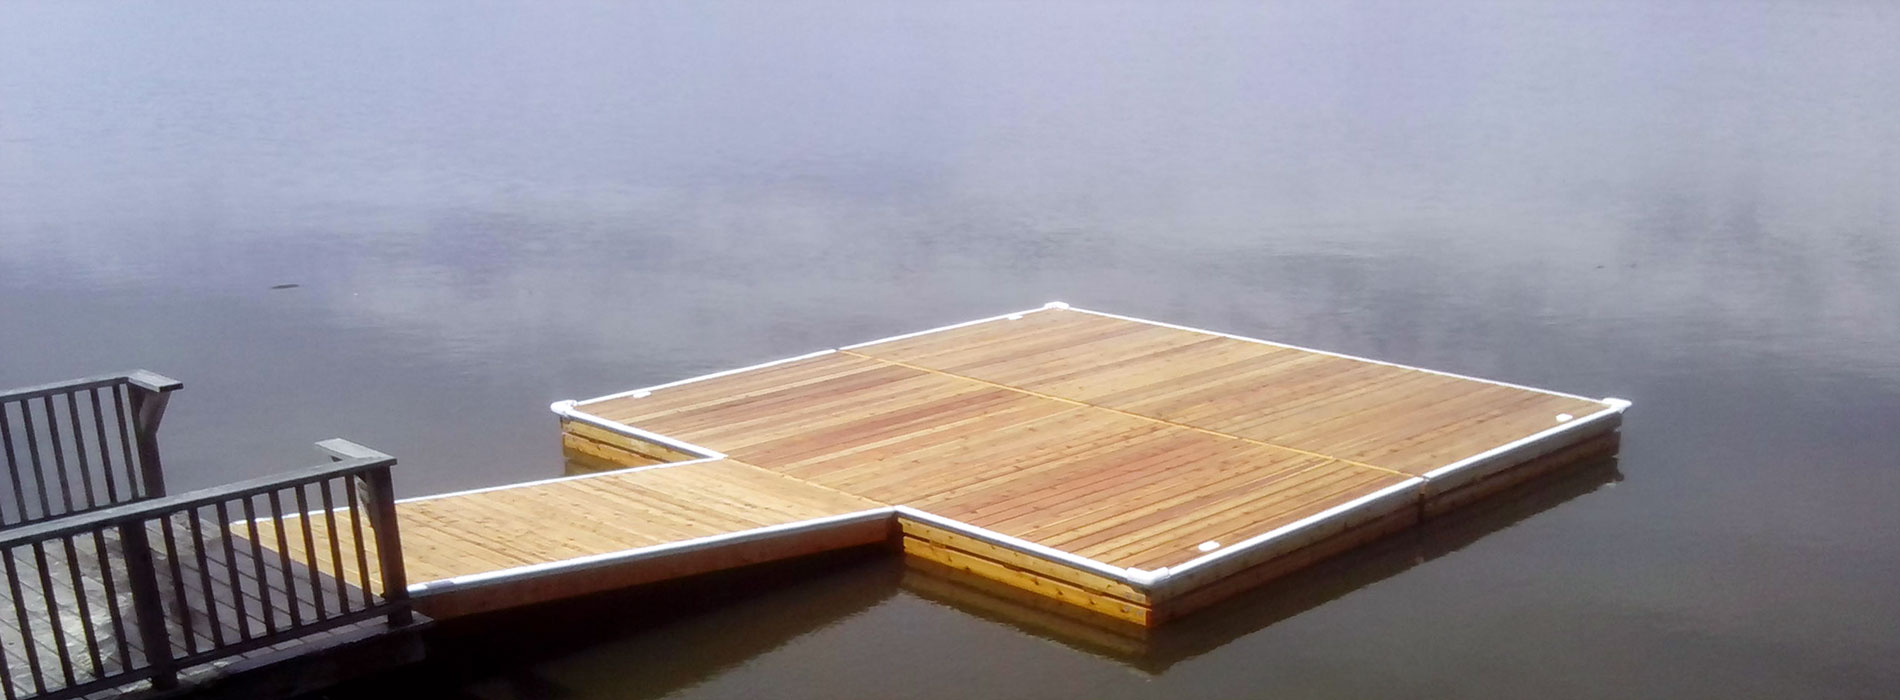 A 20×20′ floating dock.